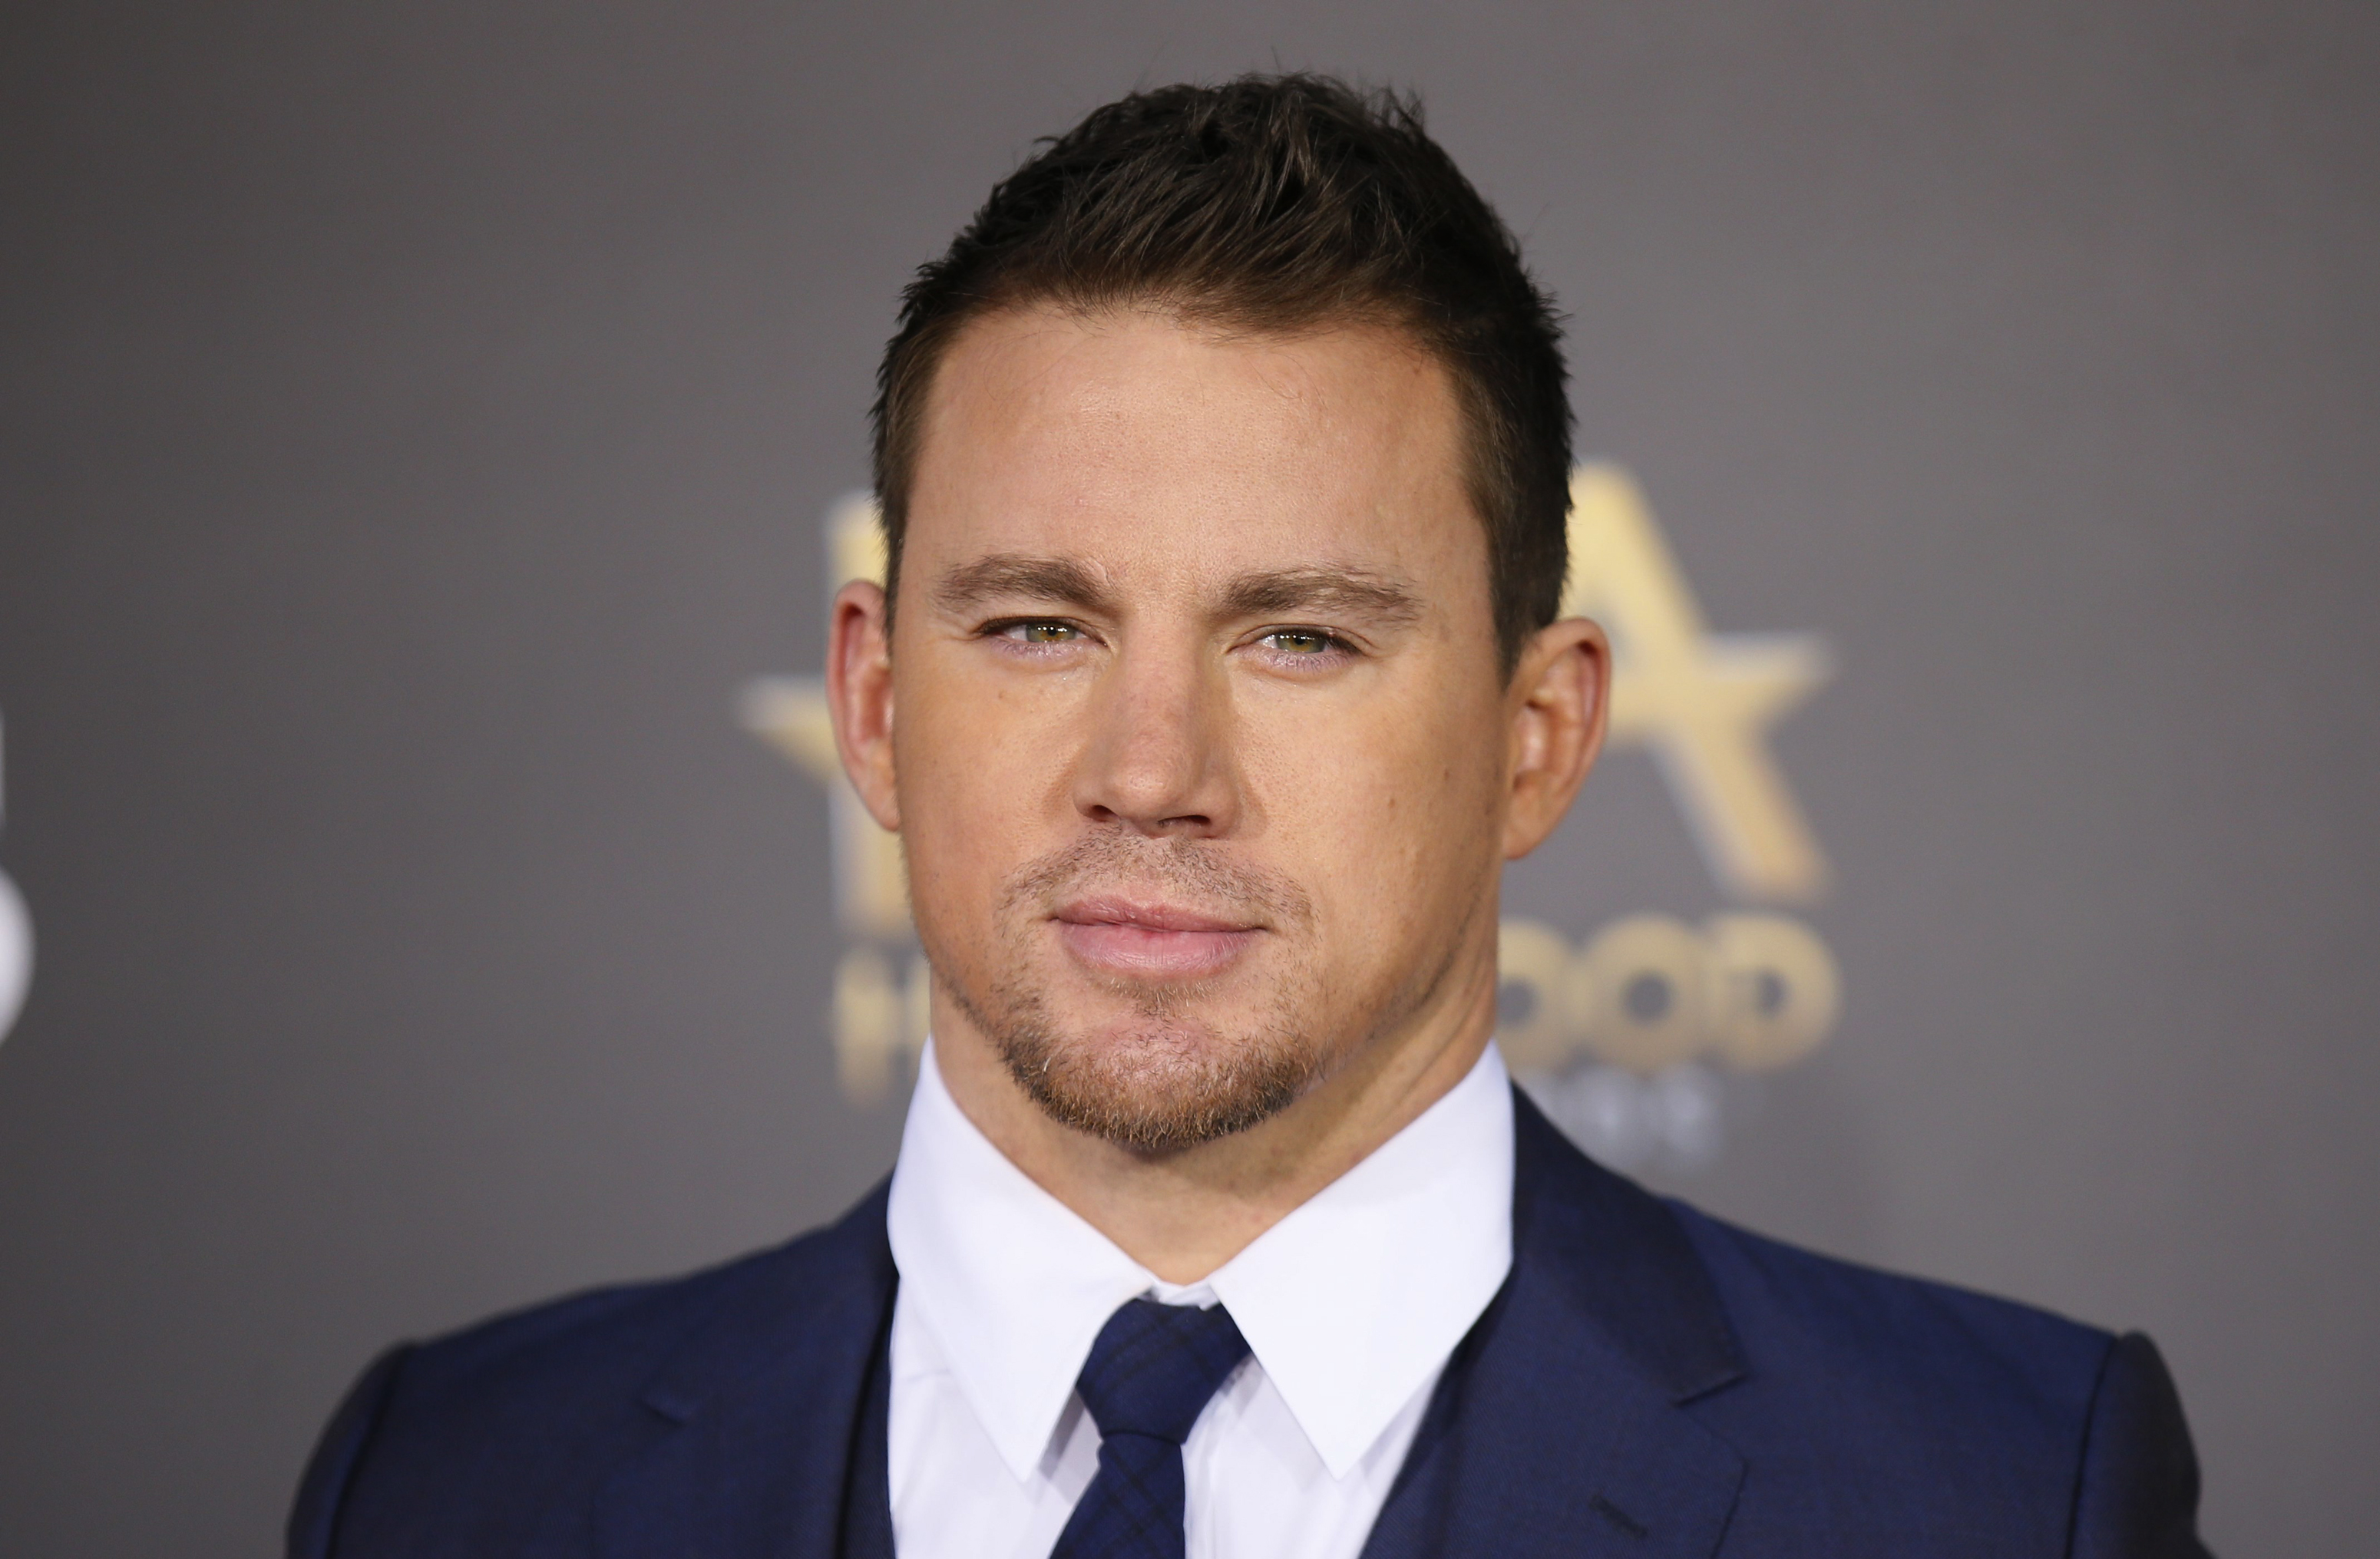 Channing Tatum Wallpapers, Pictures, Images ченнинг татум